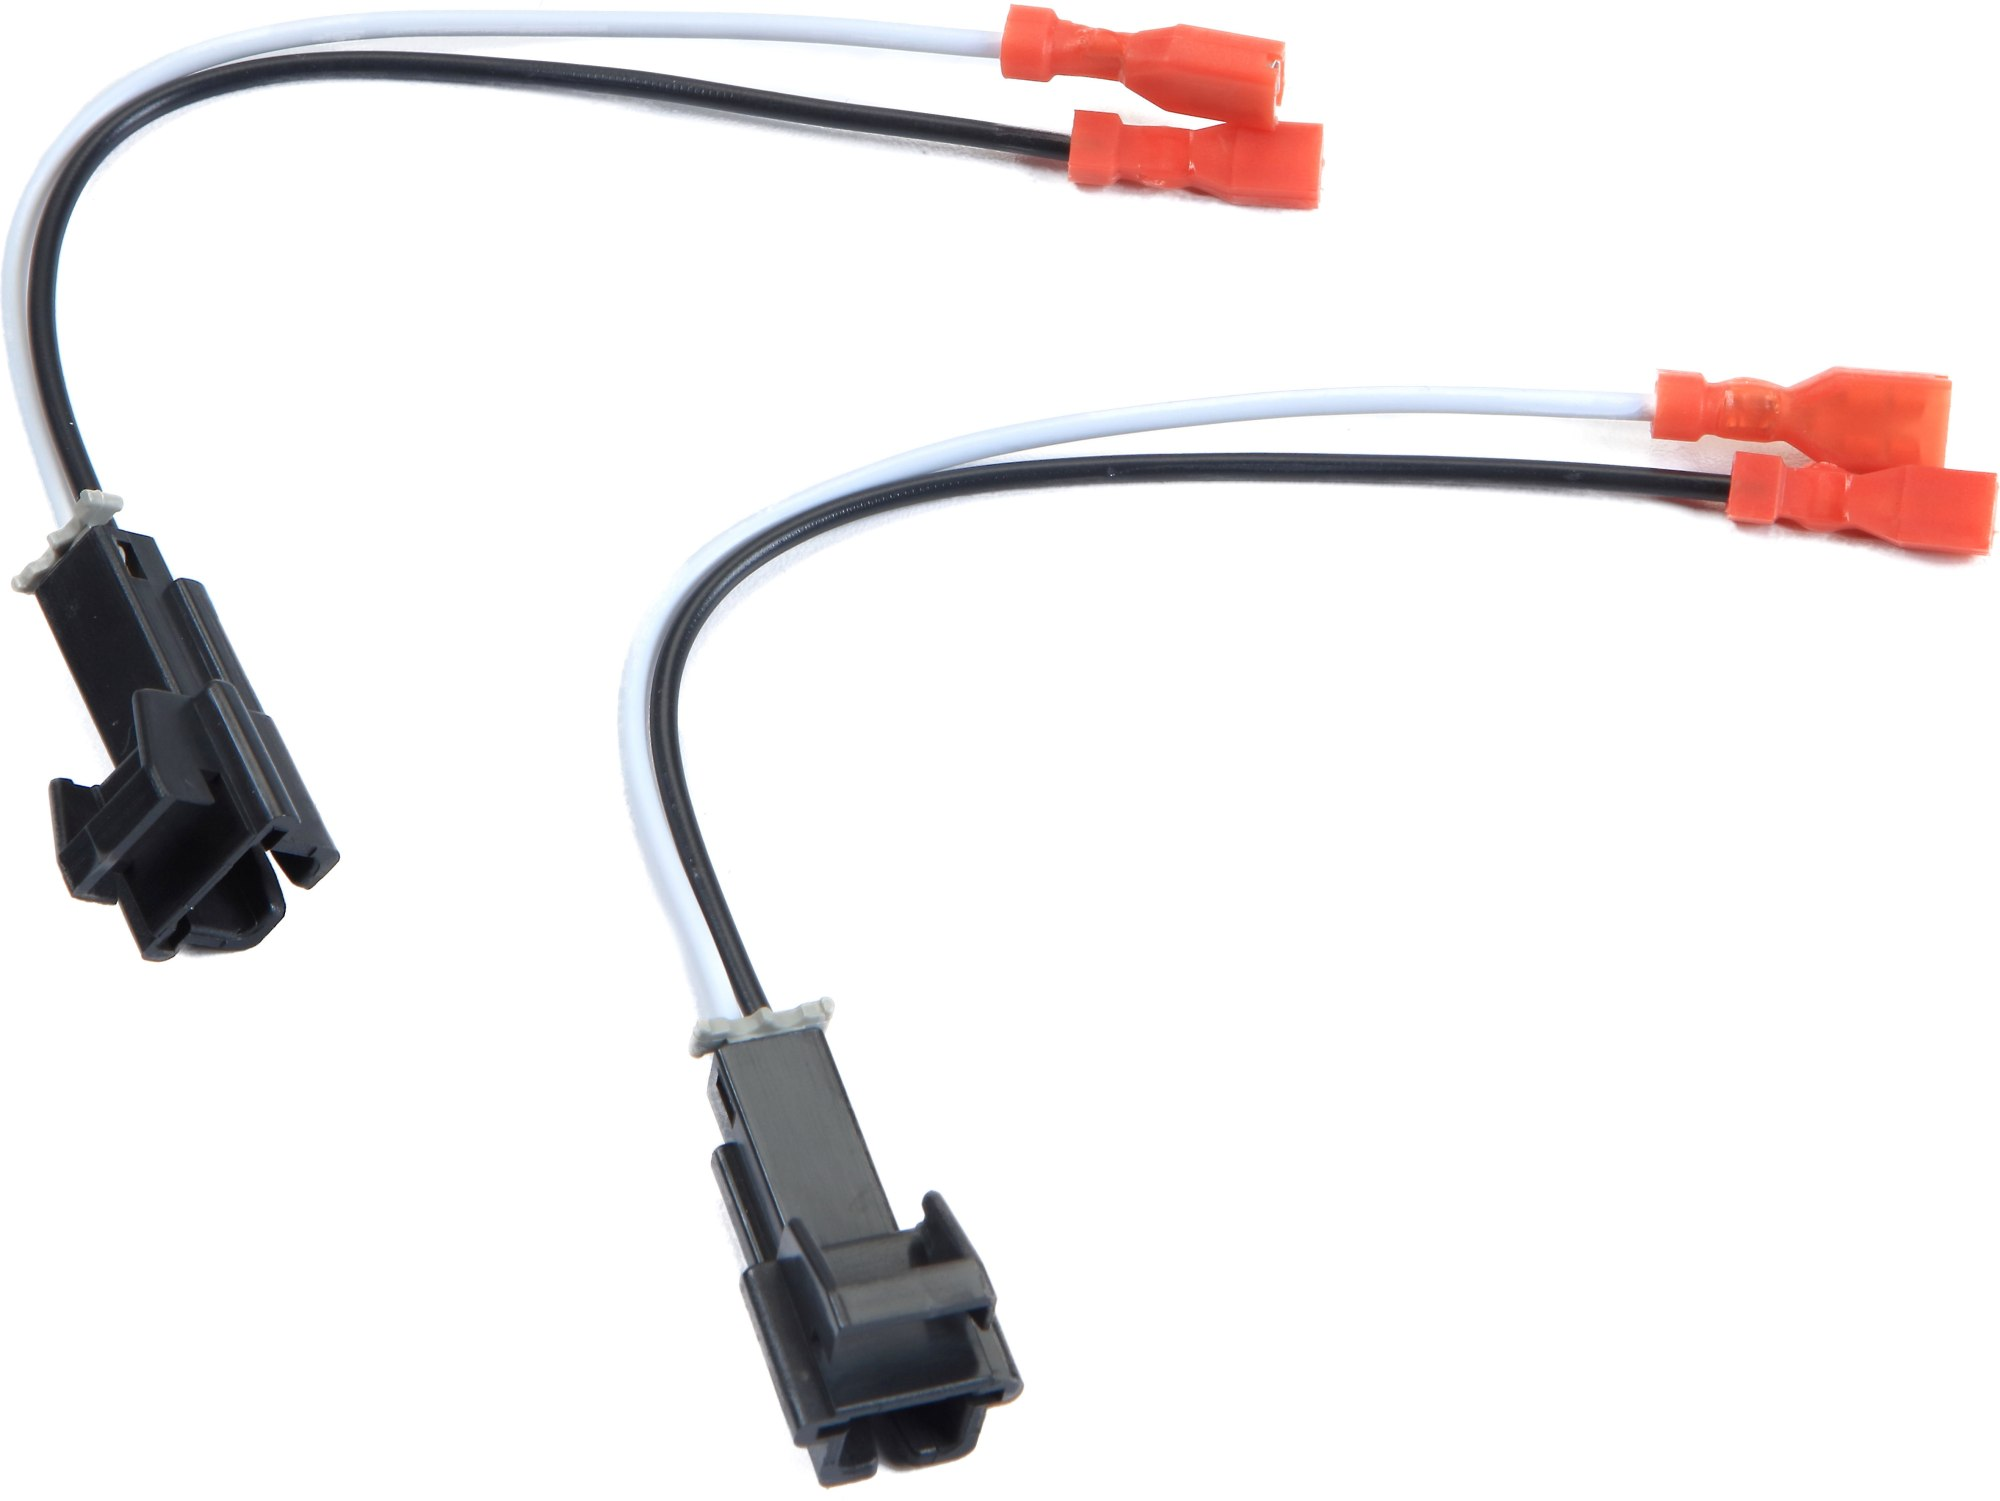 hight resolution of metra 72 4568 speaker wiring harness for select 1988 up gm vehicles at crutchfield